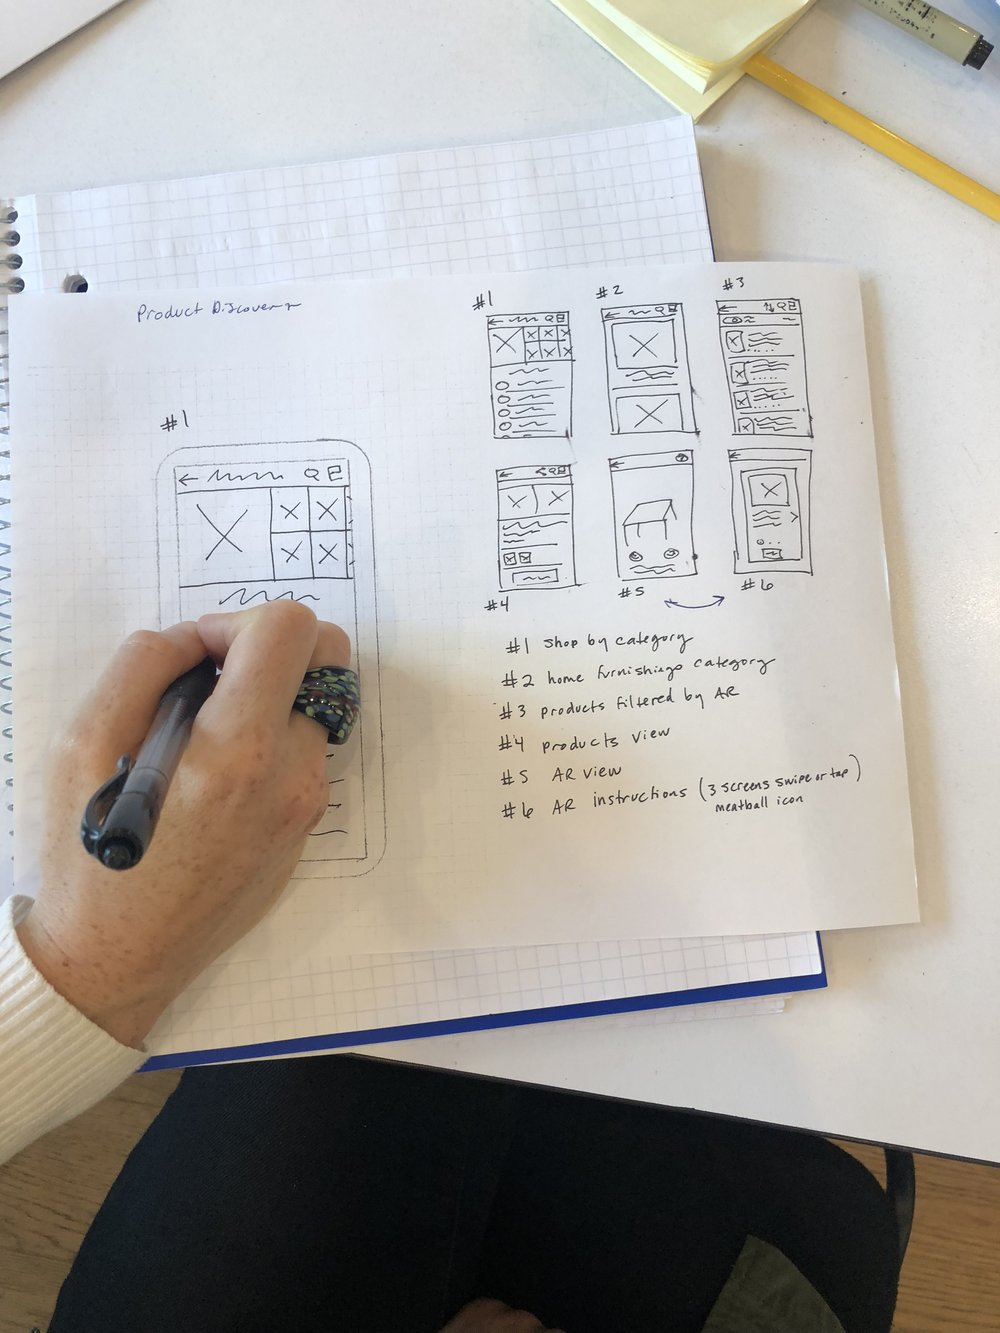 Low Fidelity Wireframes Sketches